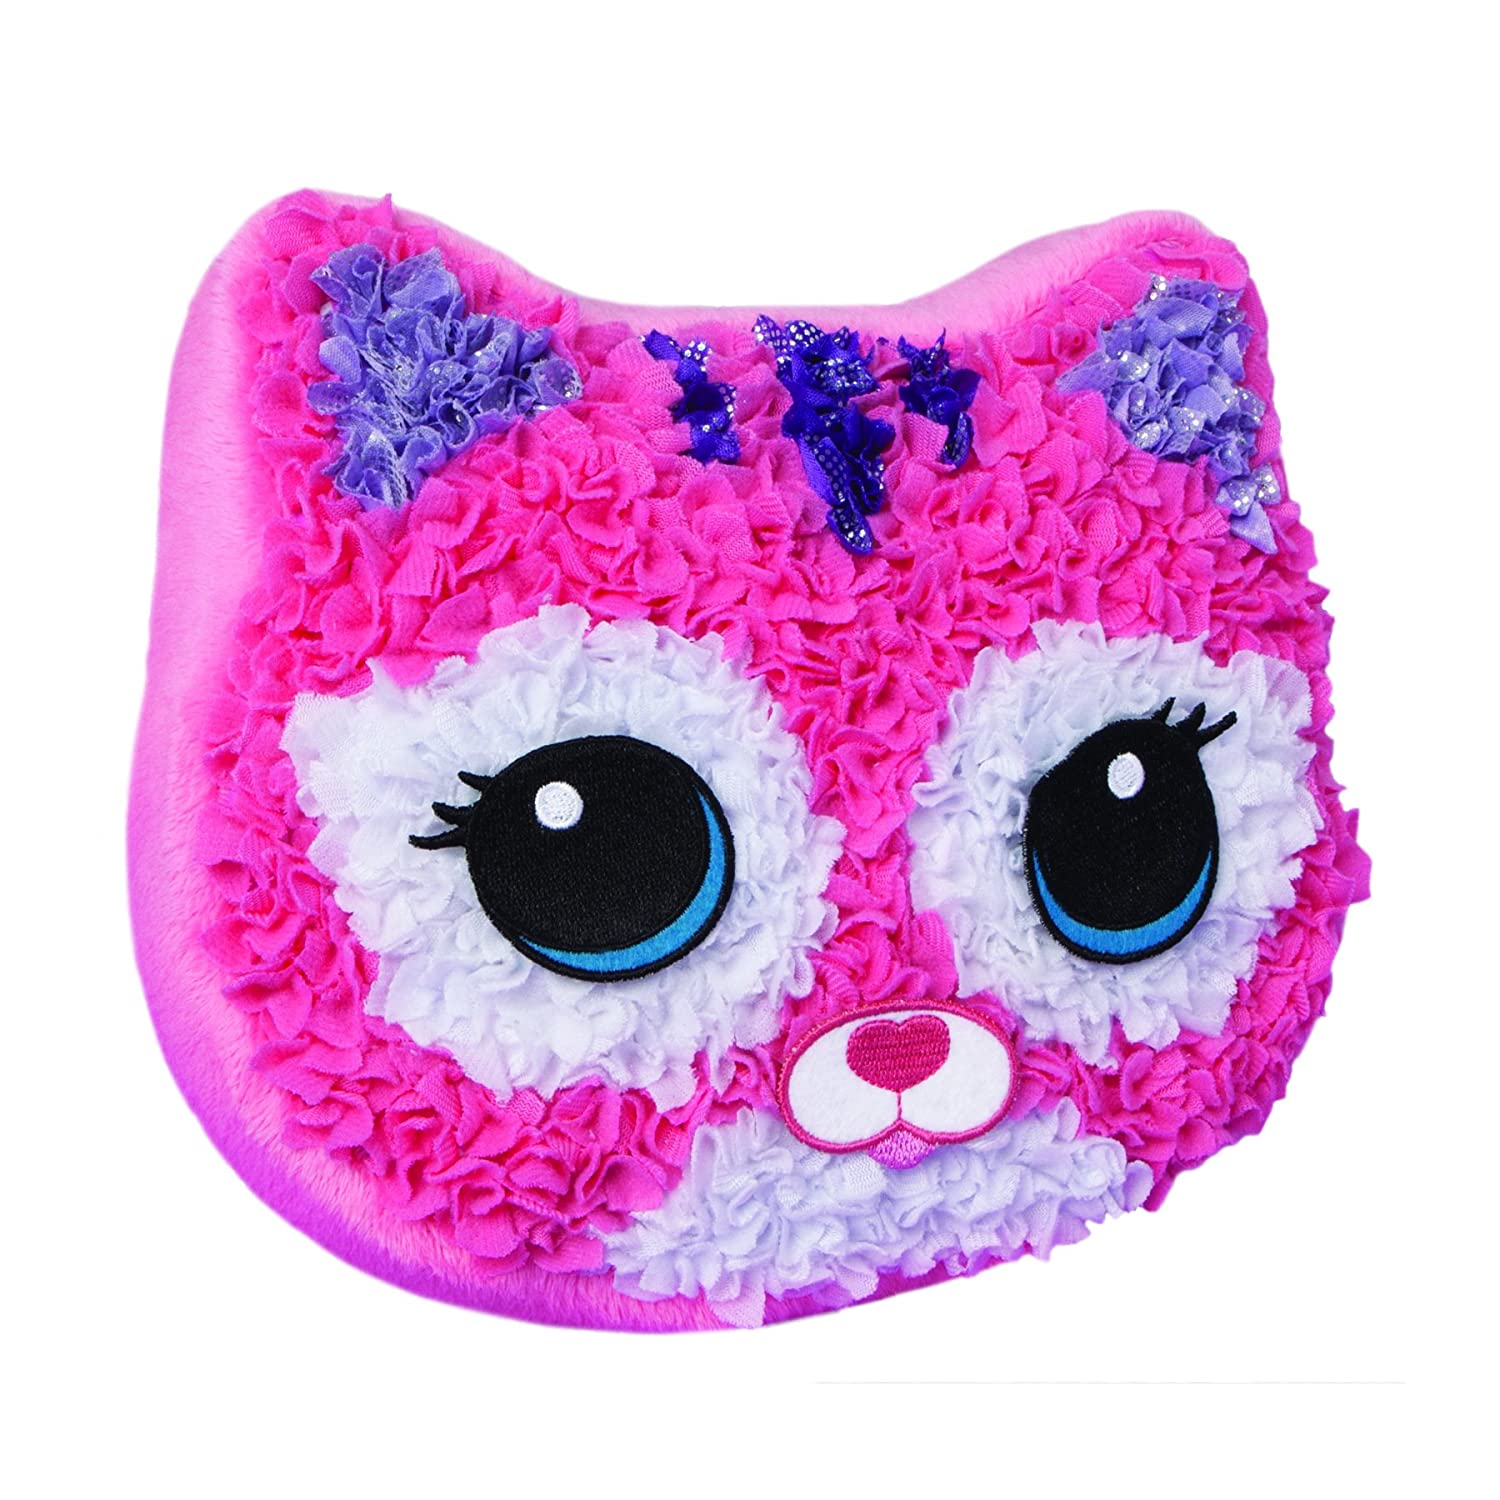 Orb Factory 67816 Plush Craft Purr-Fect Pillow The Orb Factory Non-Classifiable